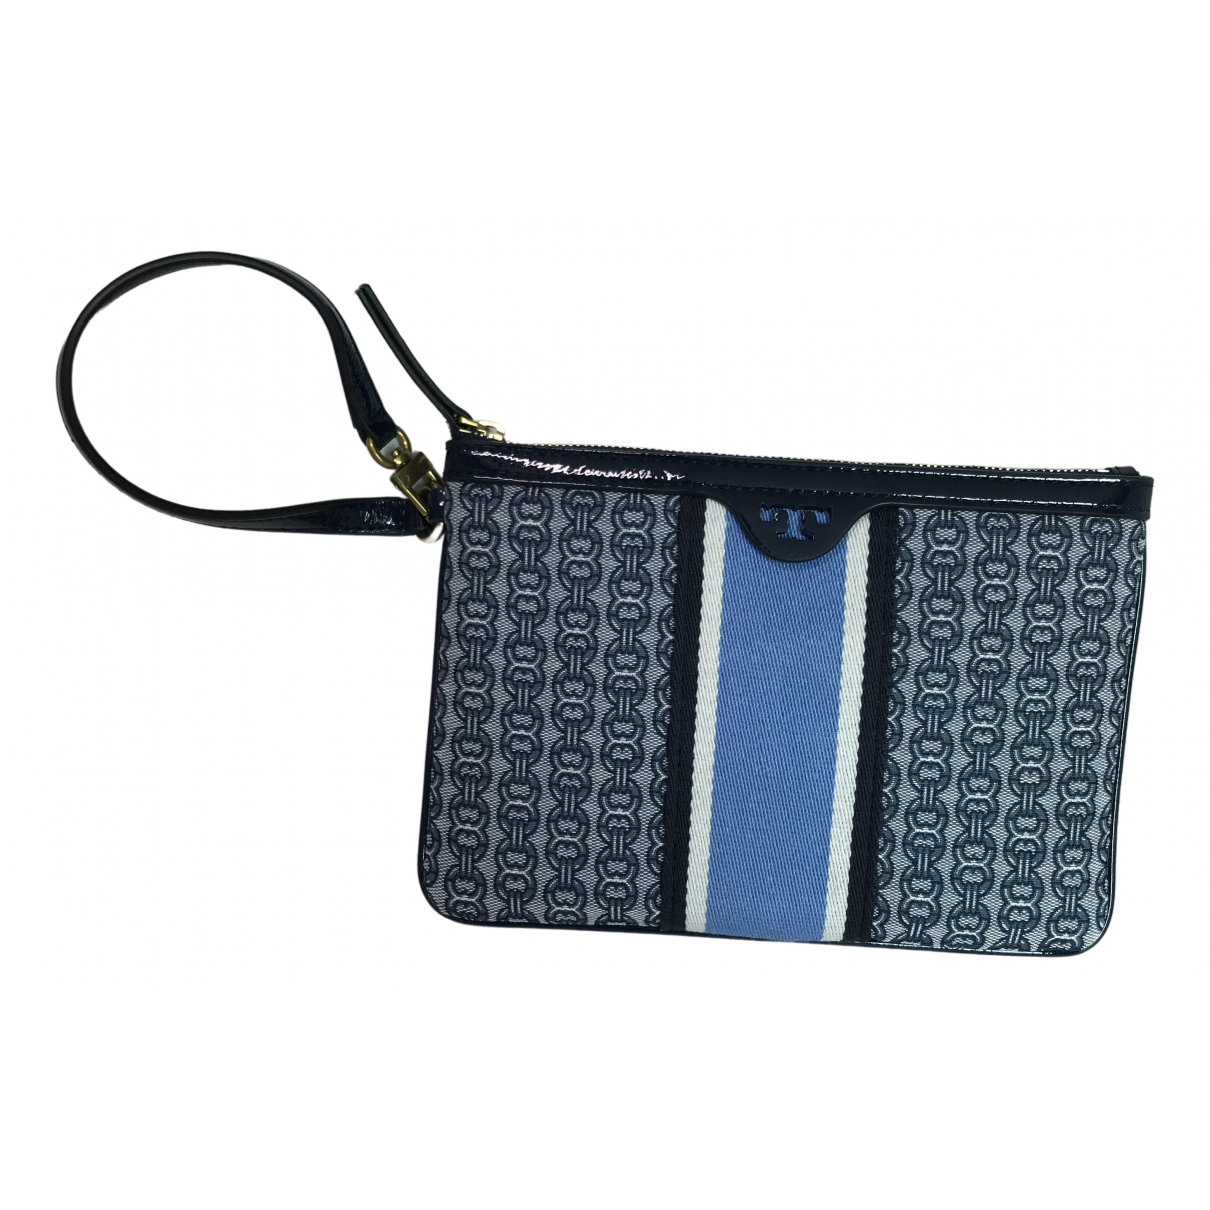 Tory Burch \N Clutch in  Marine Denim - Jeans